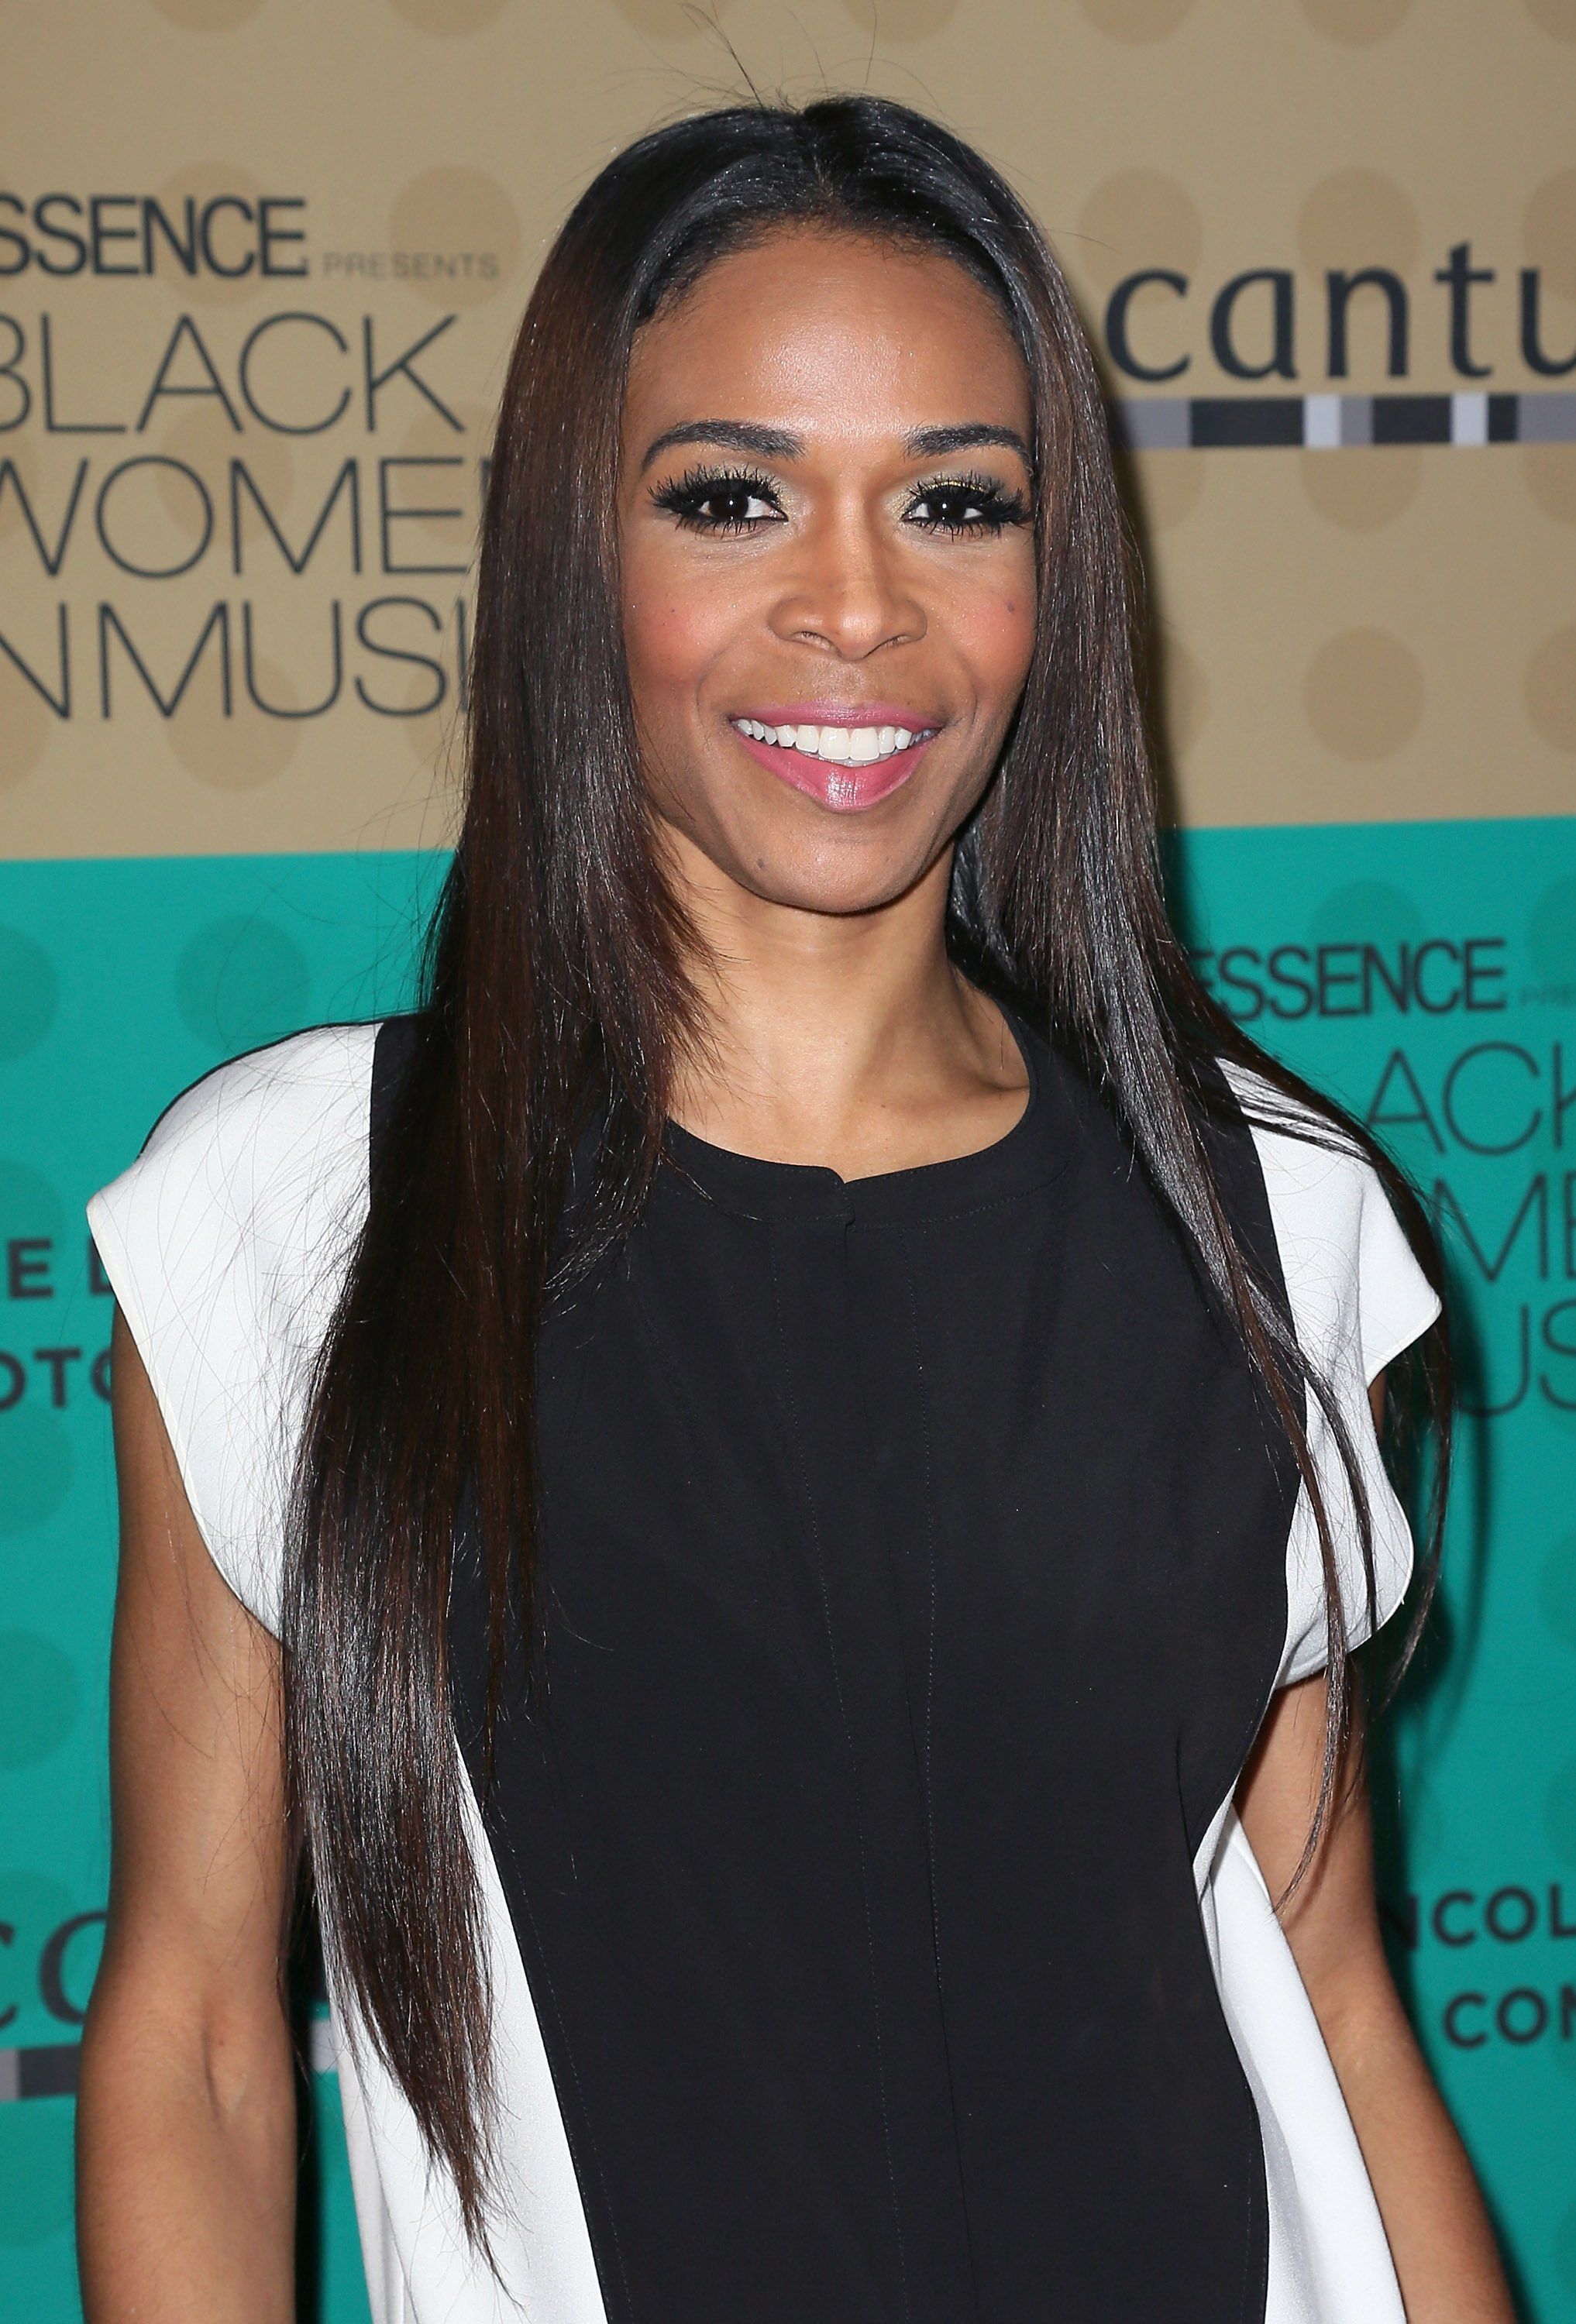 Michelle Williams at Essence Magazine's 5th Annual Black Women in Music event at 1 OAK on January 22, 2014 in West Hollywood, California.|Source: Getty Images